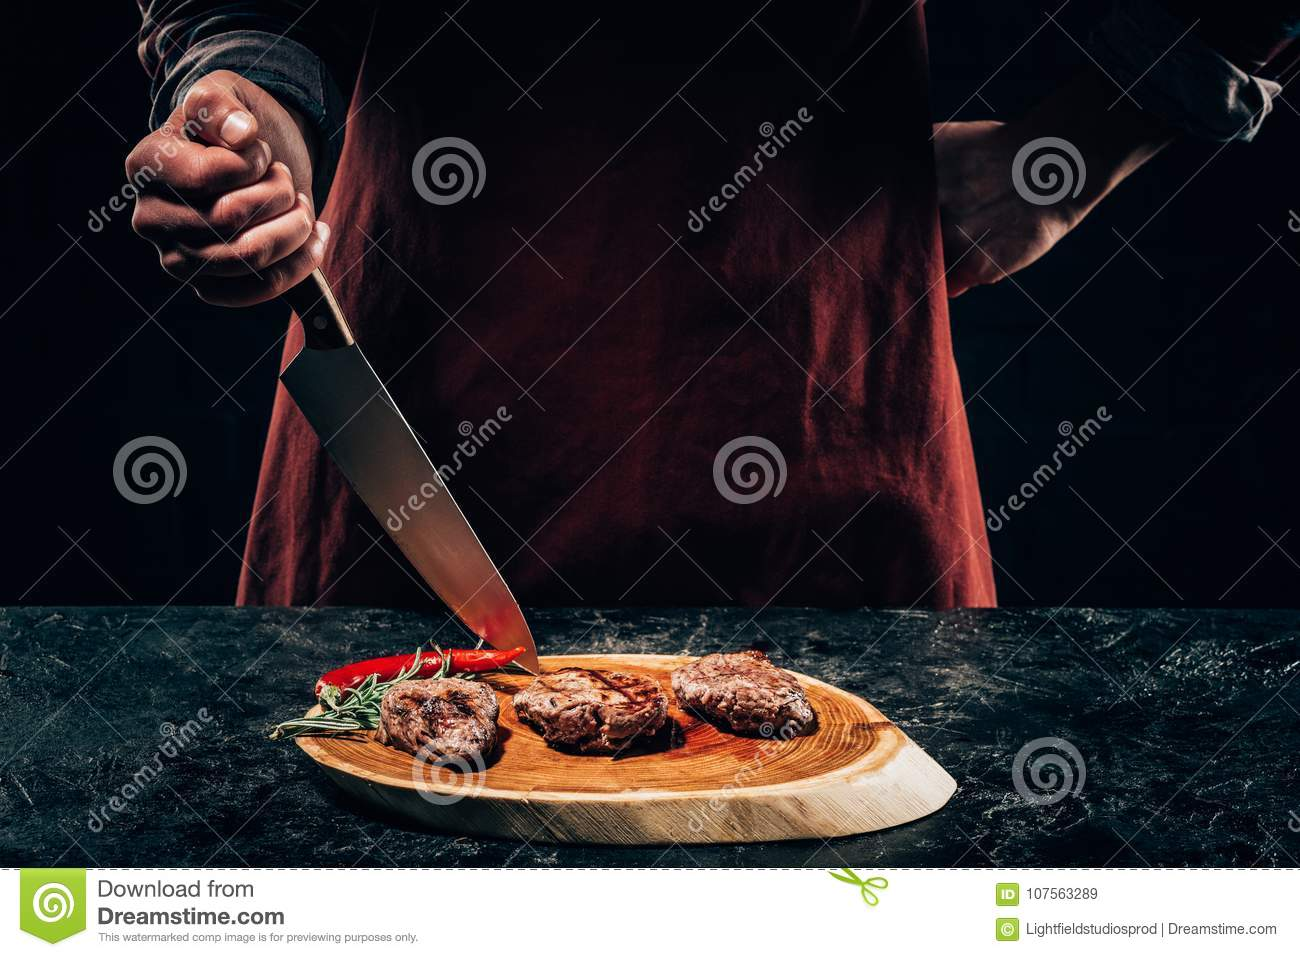 Chef in apron with meat fork and knife slicing gourmet grilled steaks with rosemary and chili pepper on wooden board